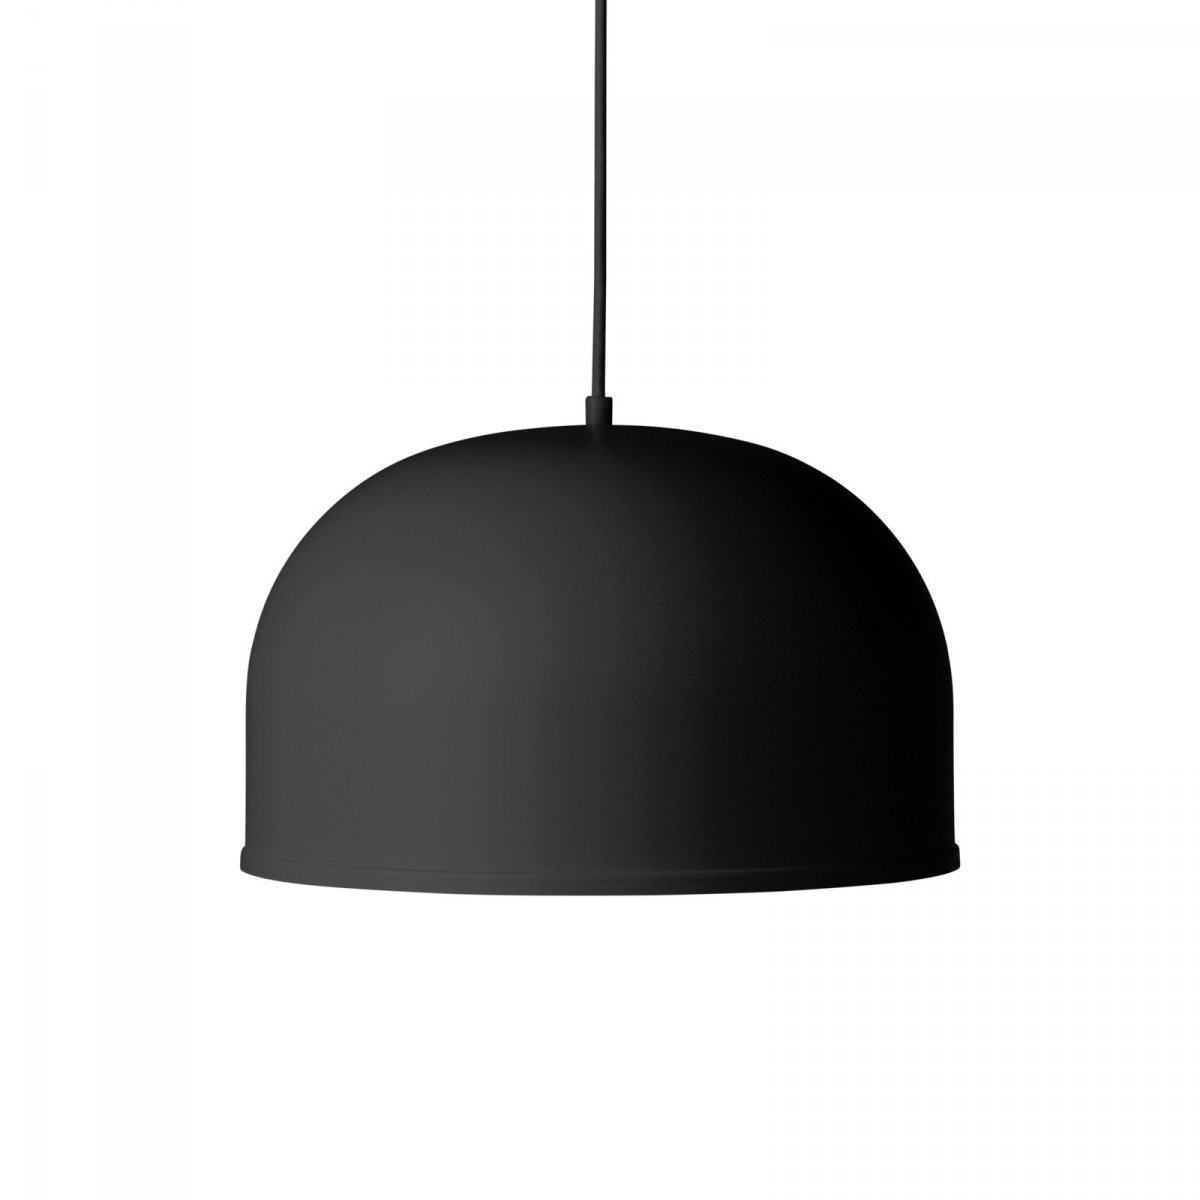 GM 30 Pendant, black.